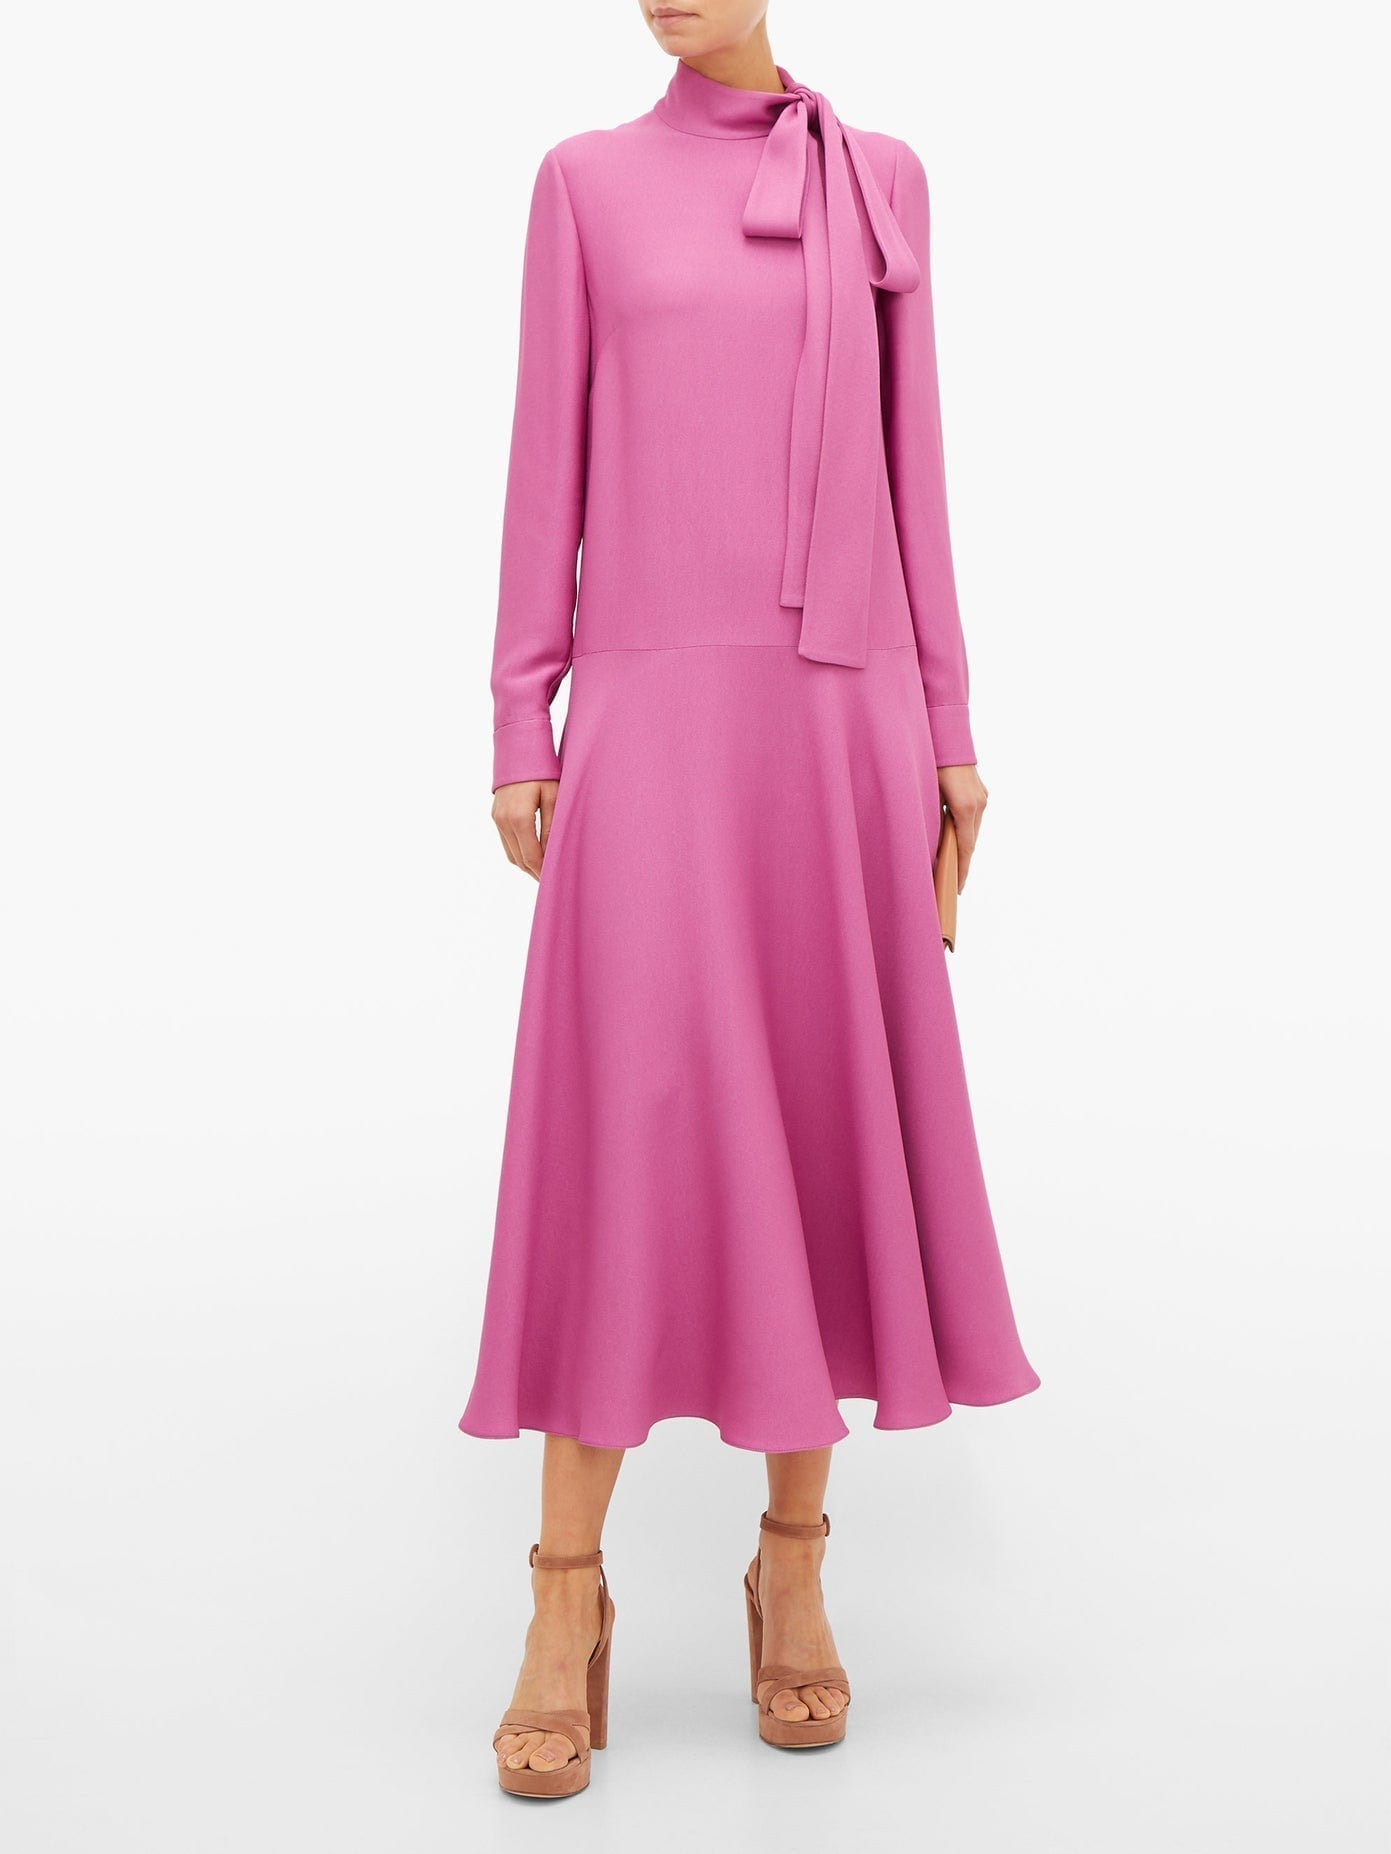 VALENTINO Tie-neck Dropped-waist Crepe Midi Dress